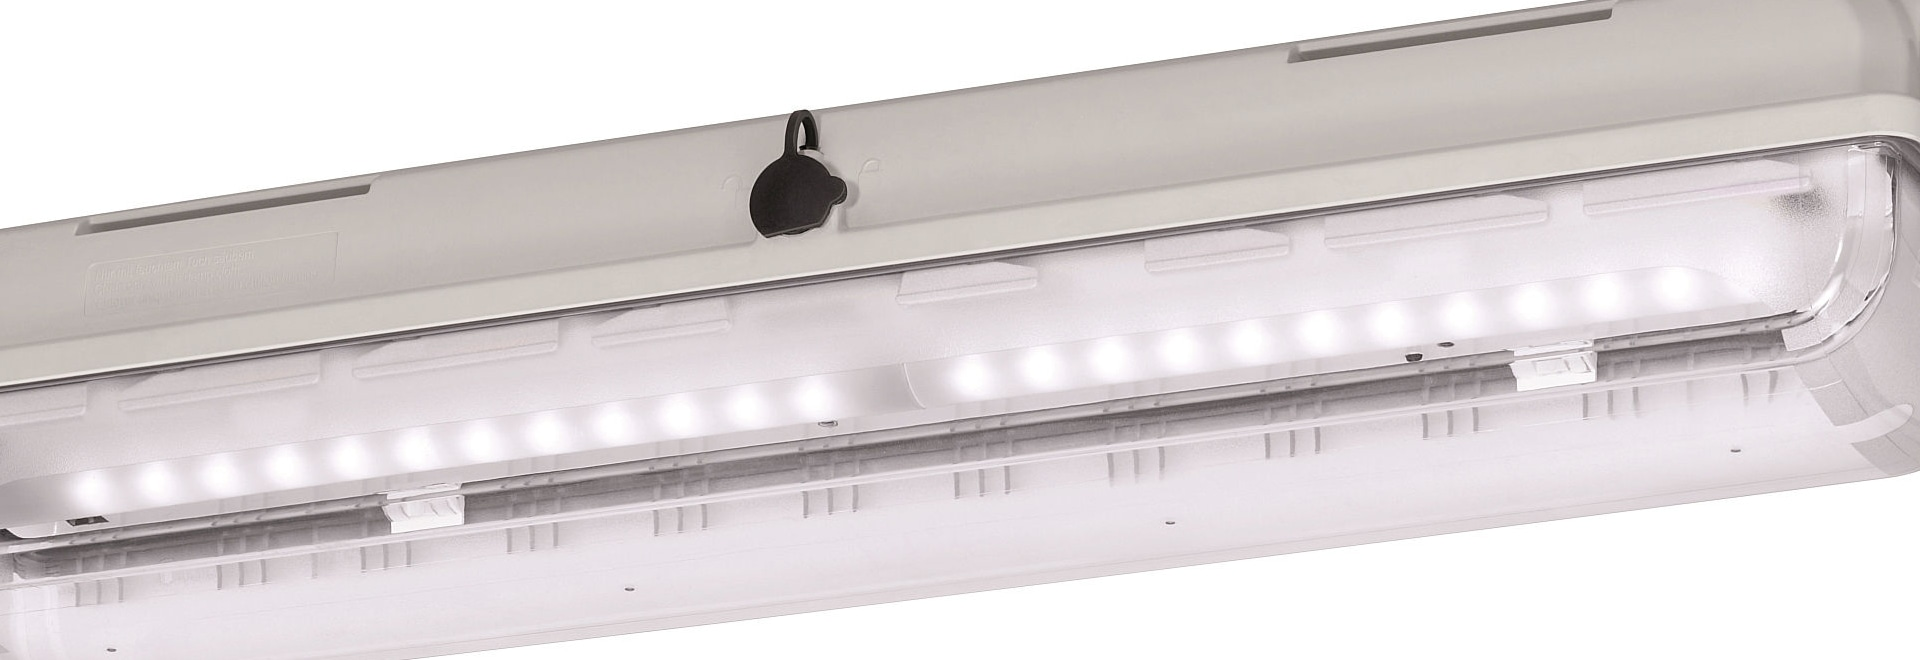 Optimum light yield, proven housing for ex zones: Light-weight, durable LED lights for general lighting purposes